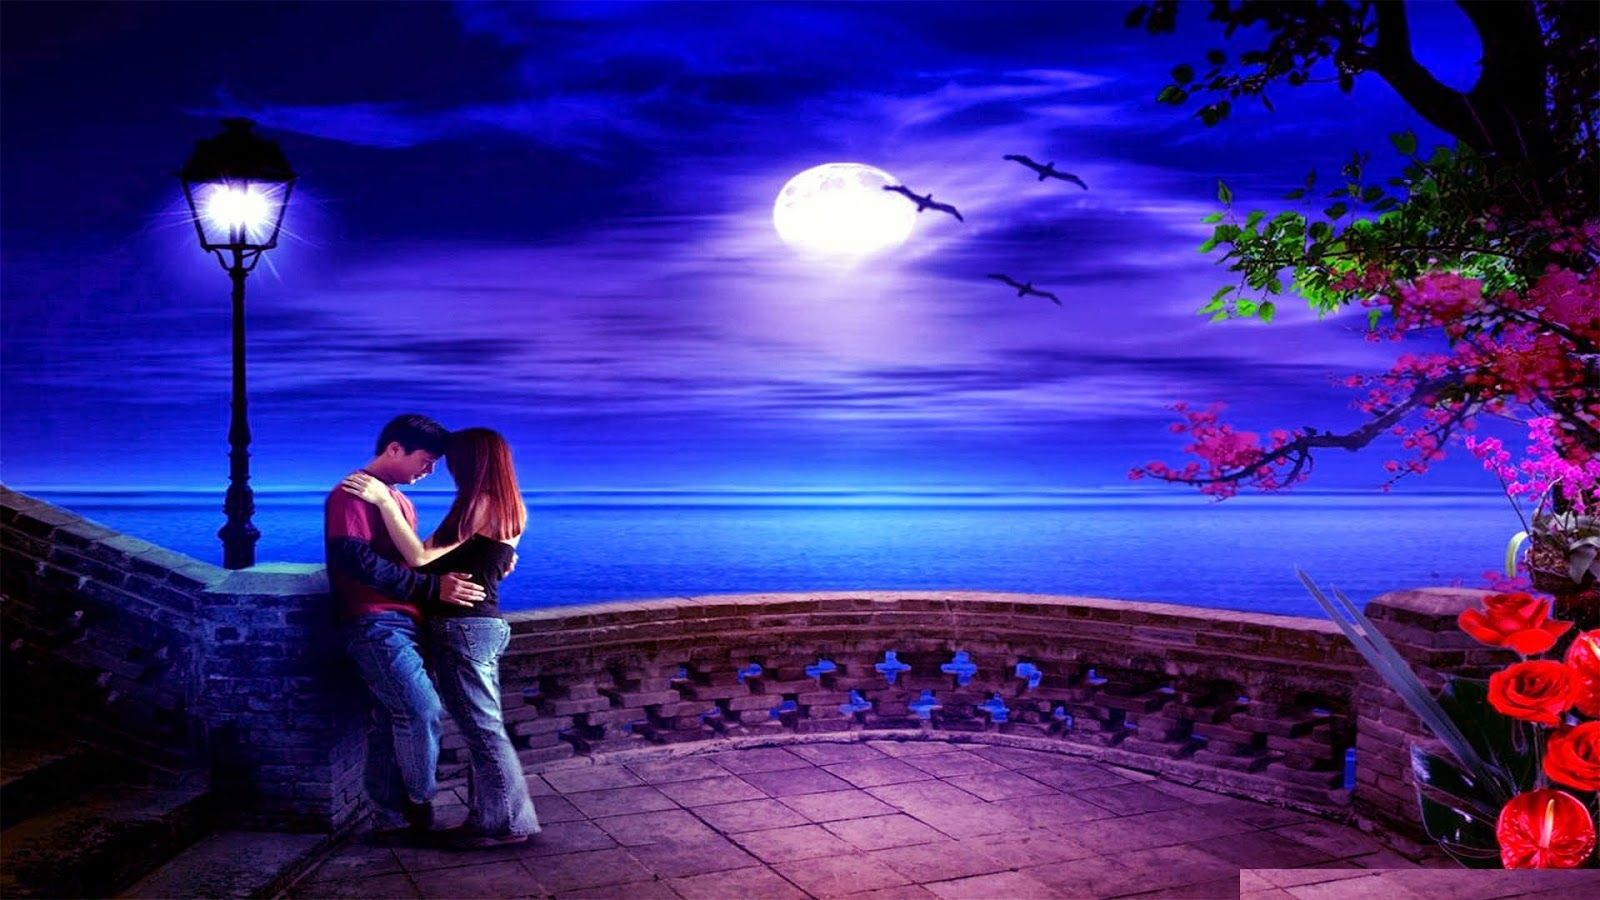 romantic hd wallpapers backgrounds